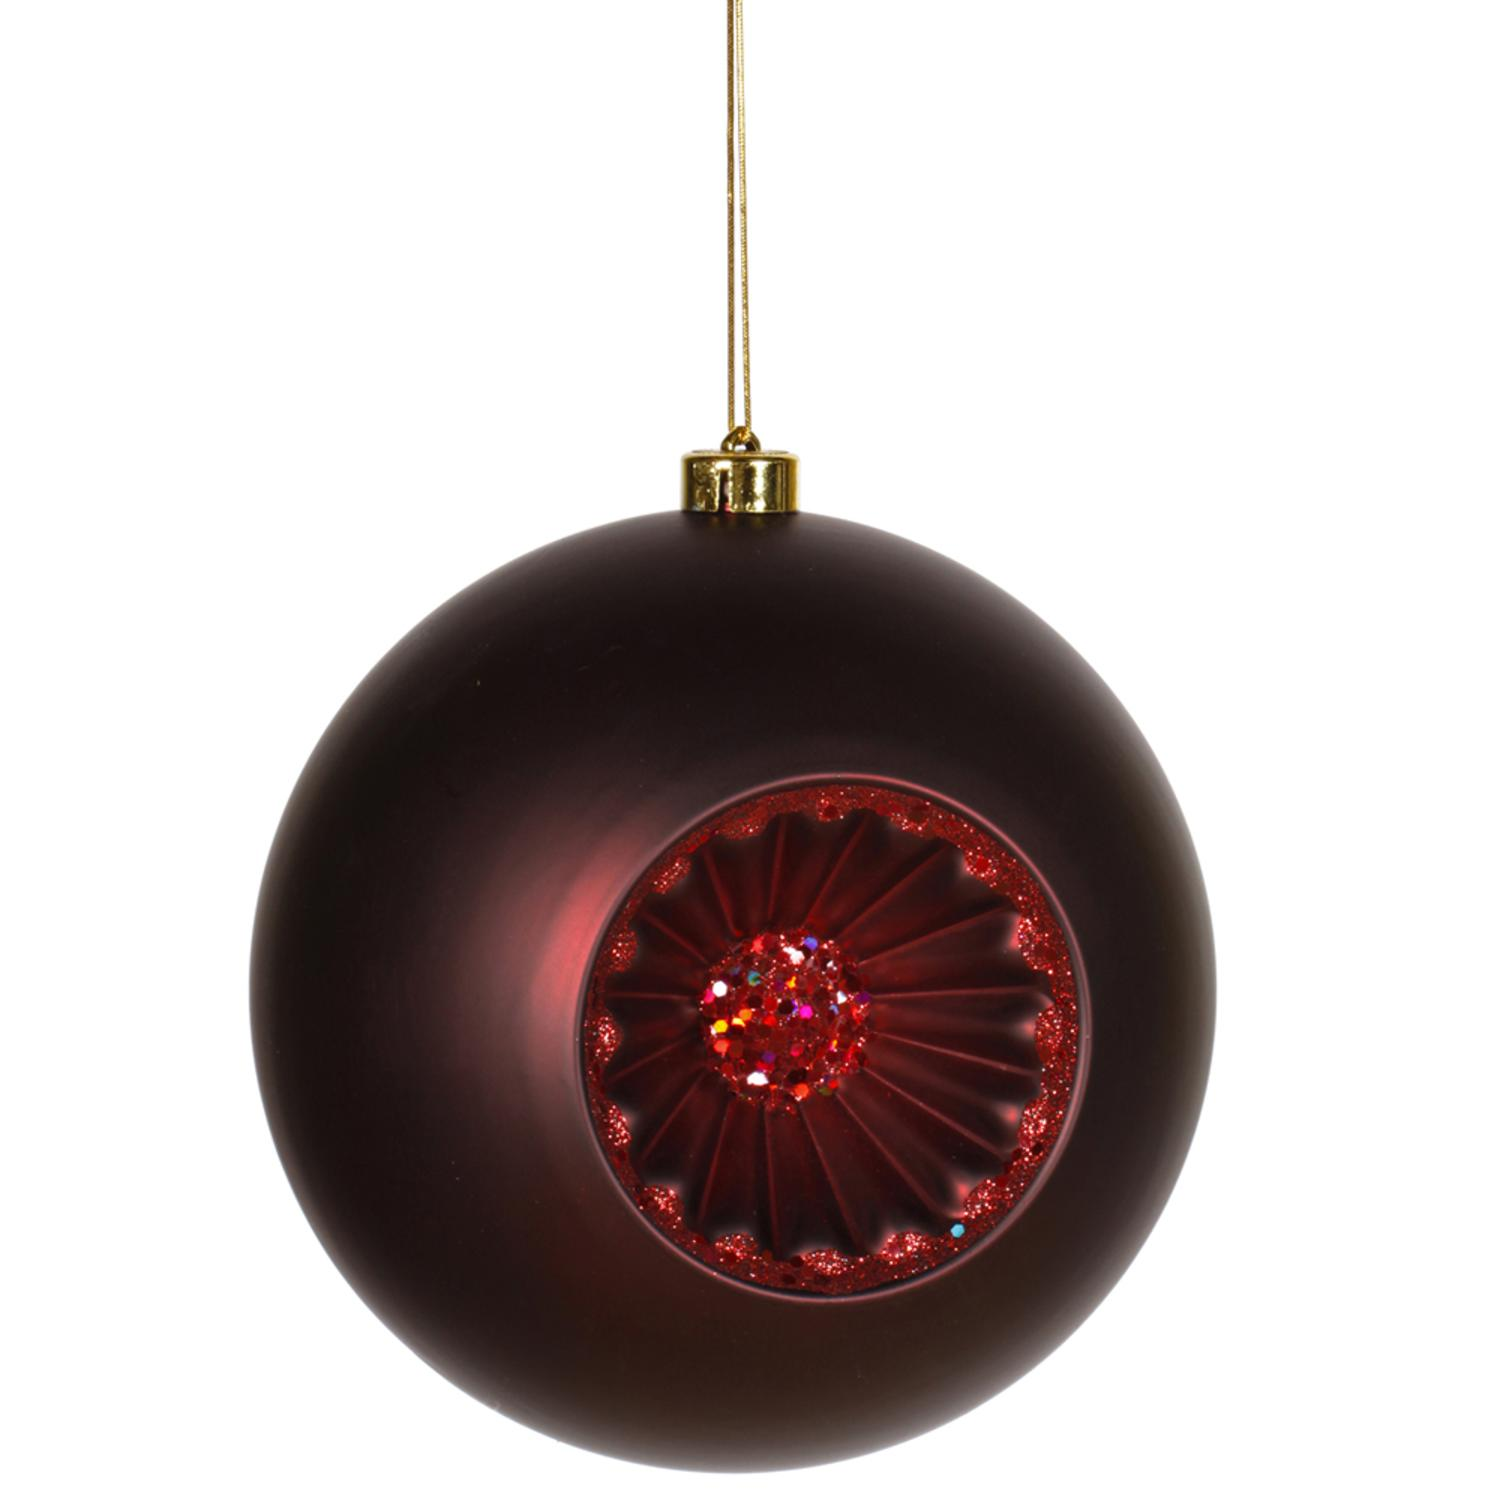 "Matte Red Hot Retro Reflector Shatterproof Christmas Ball Ornament 8"" (200mm) - image 1 of 1"